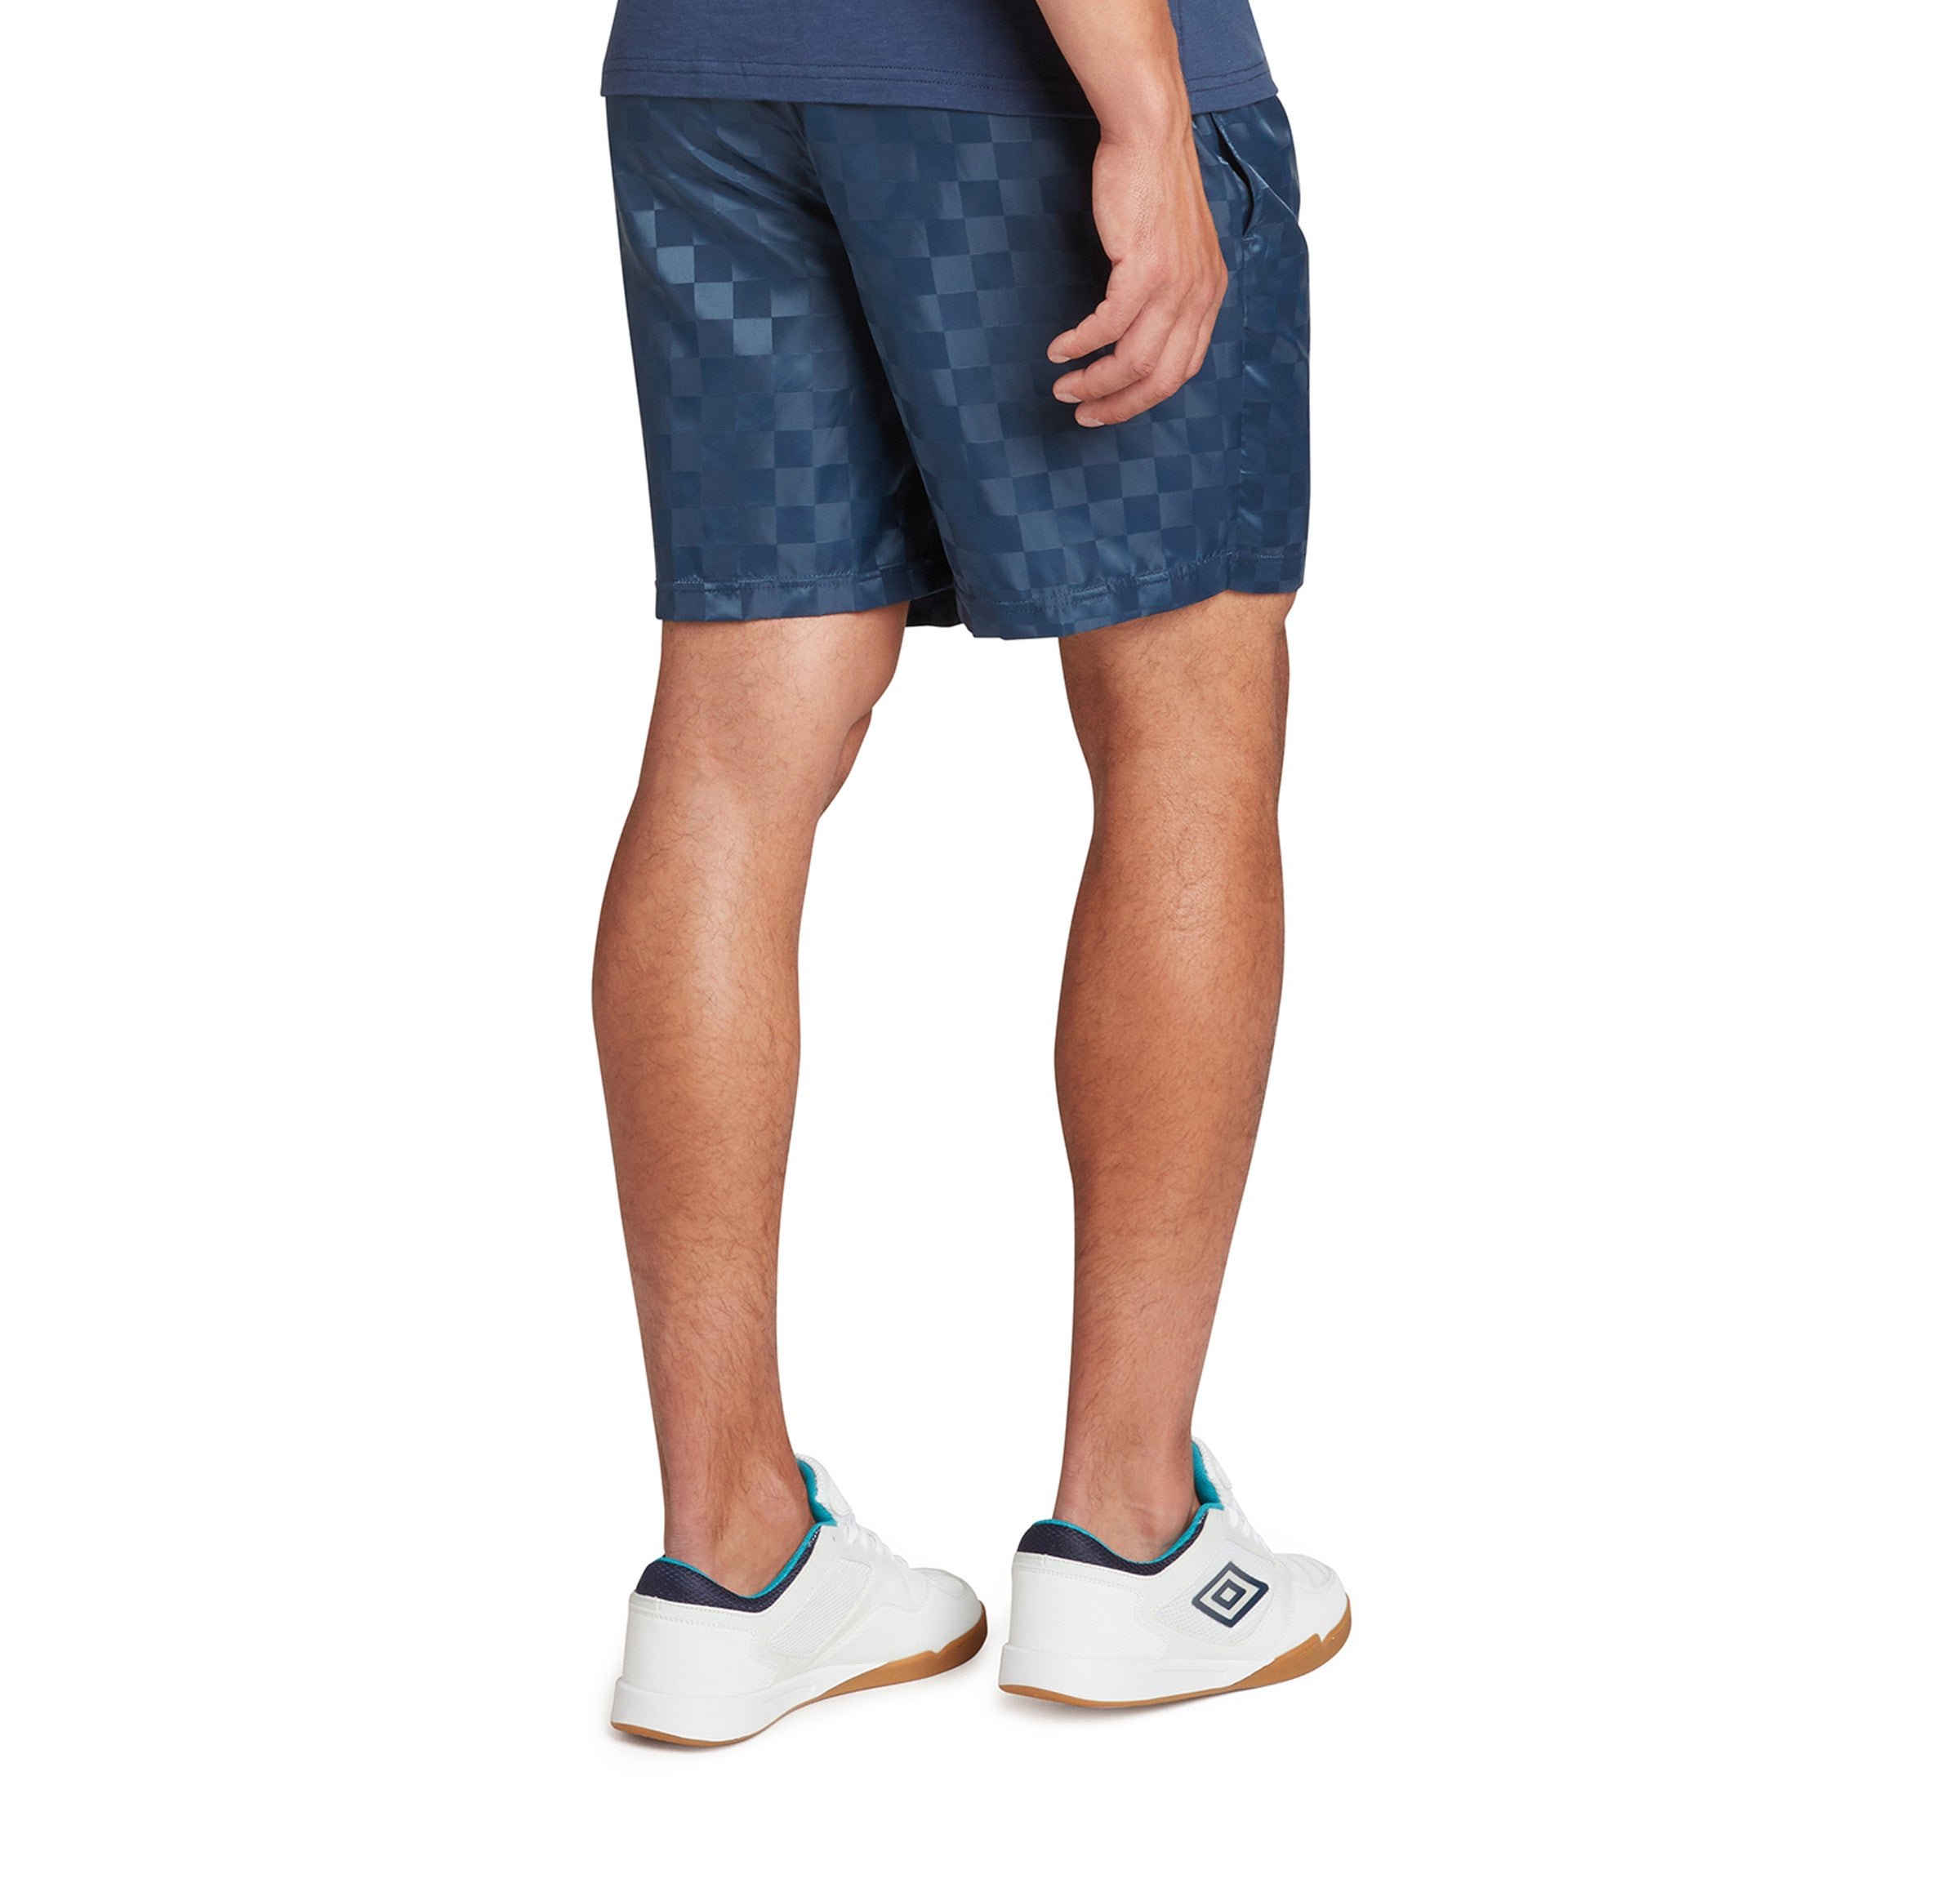 Men's Checkerboard Short